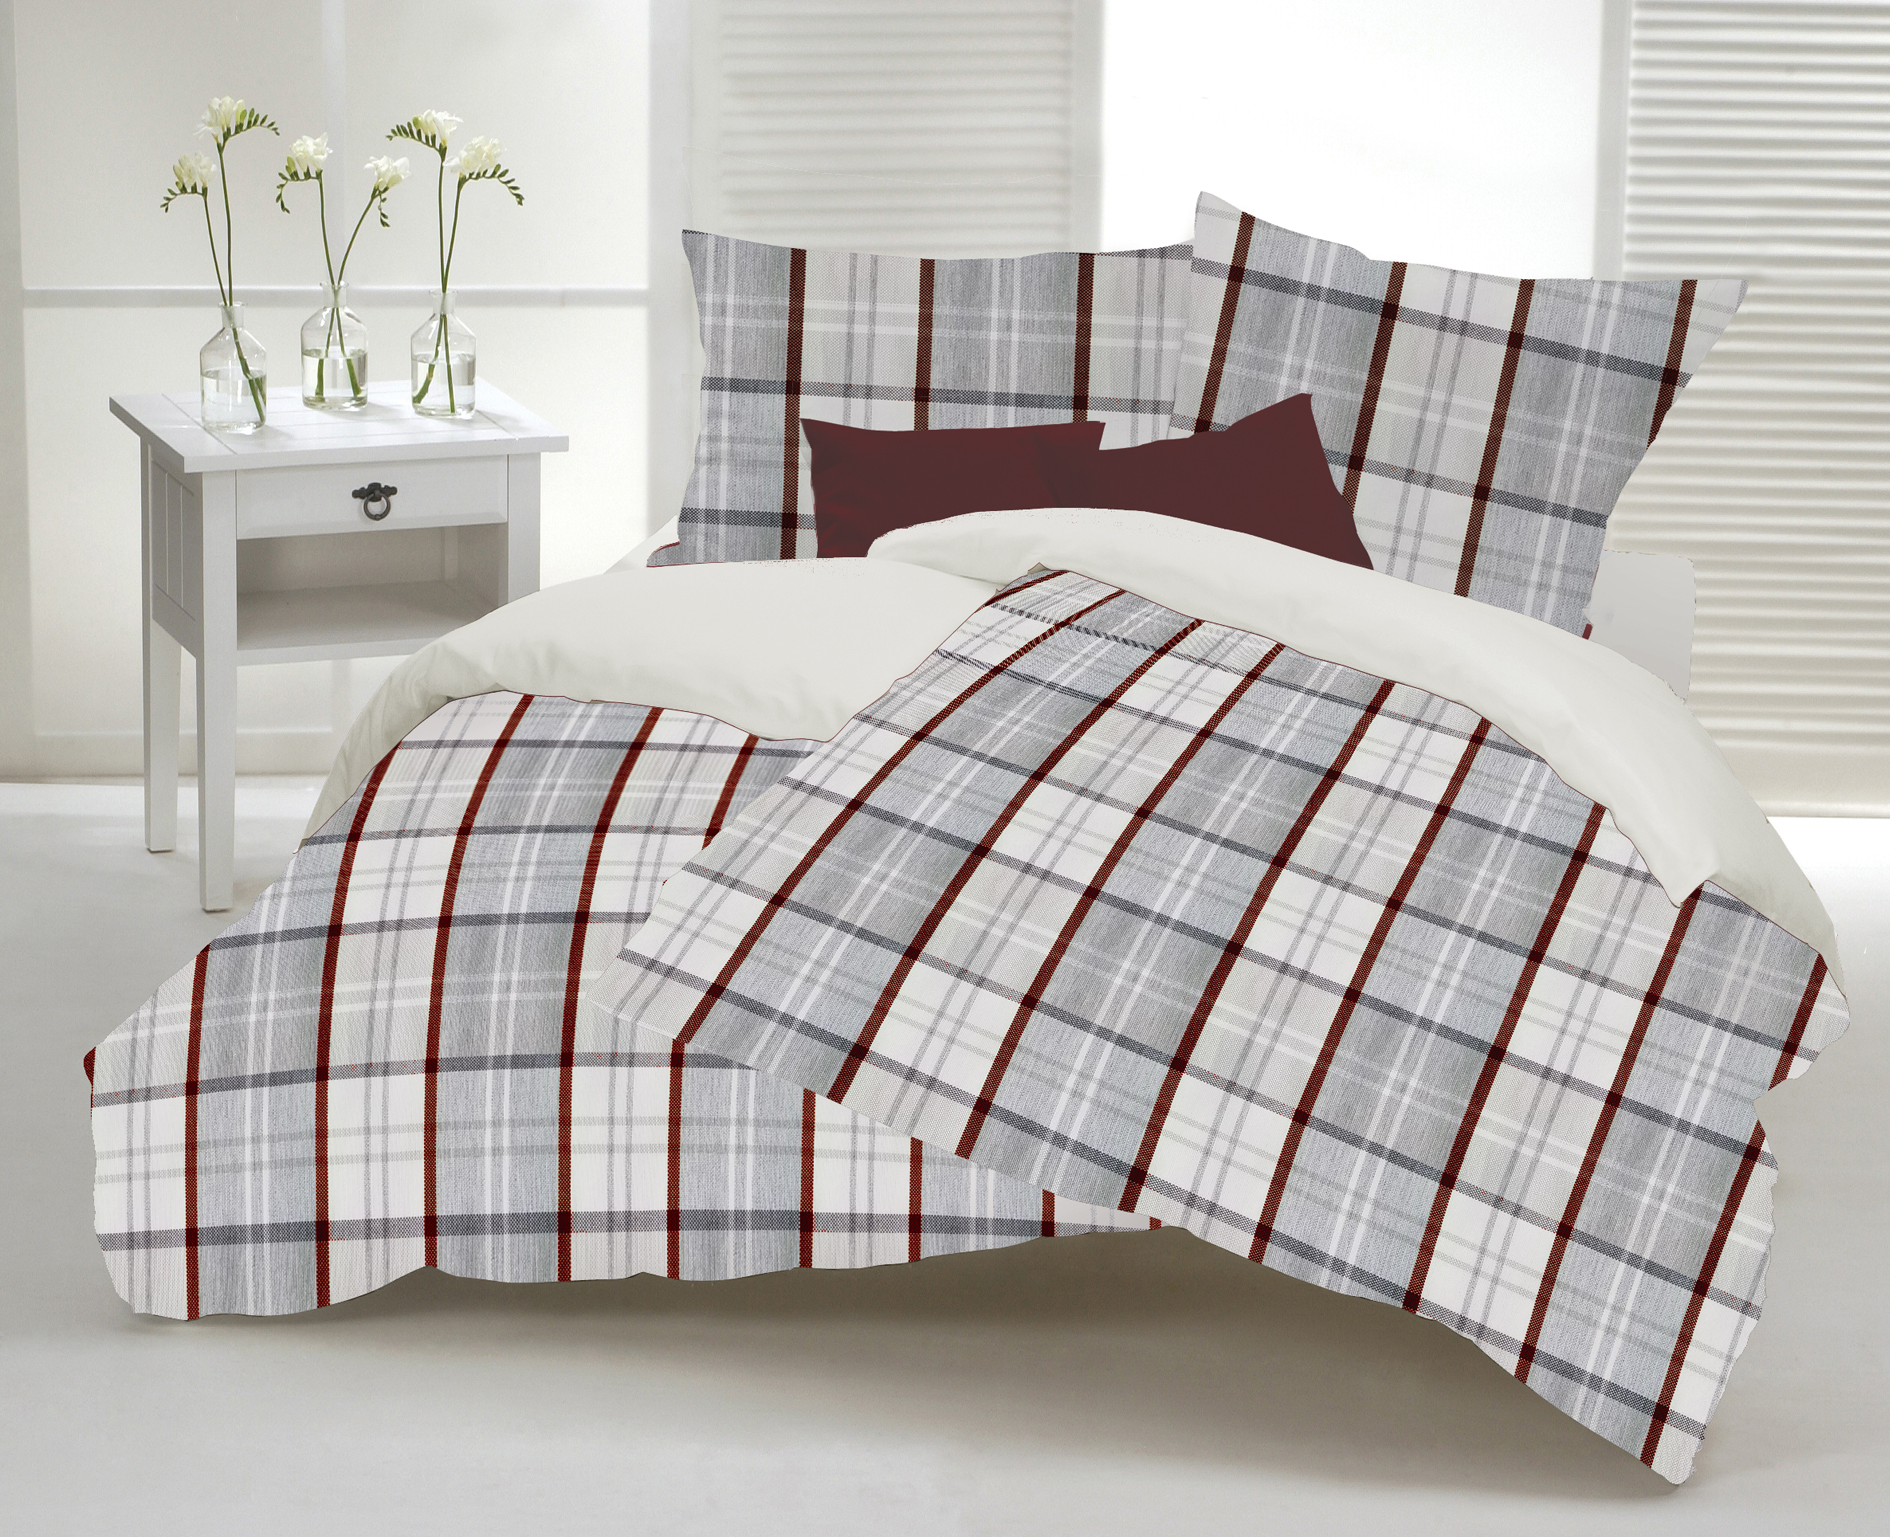 Duvet cover made in Canada , color grey and burgundy